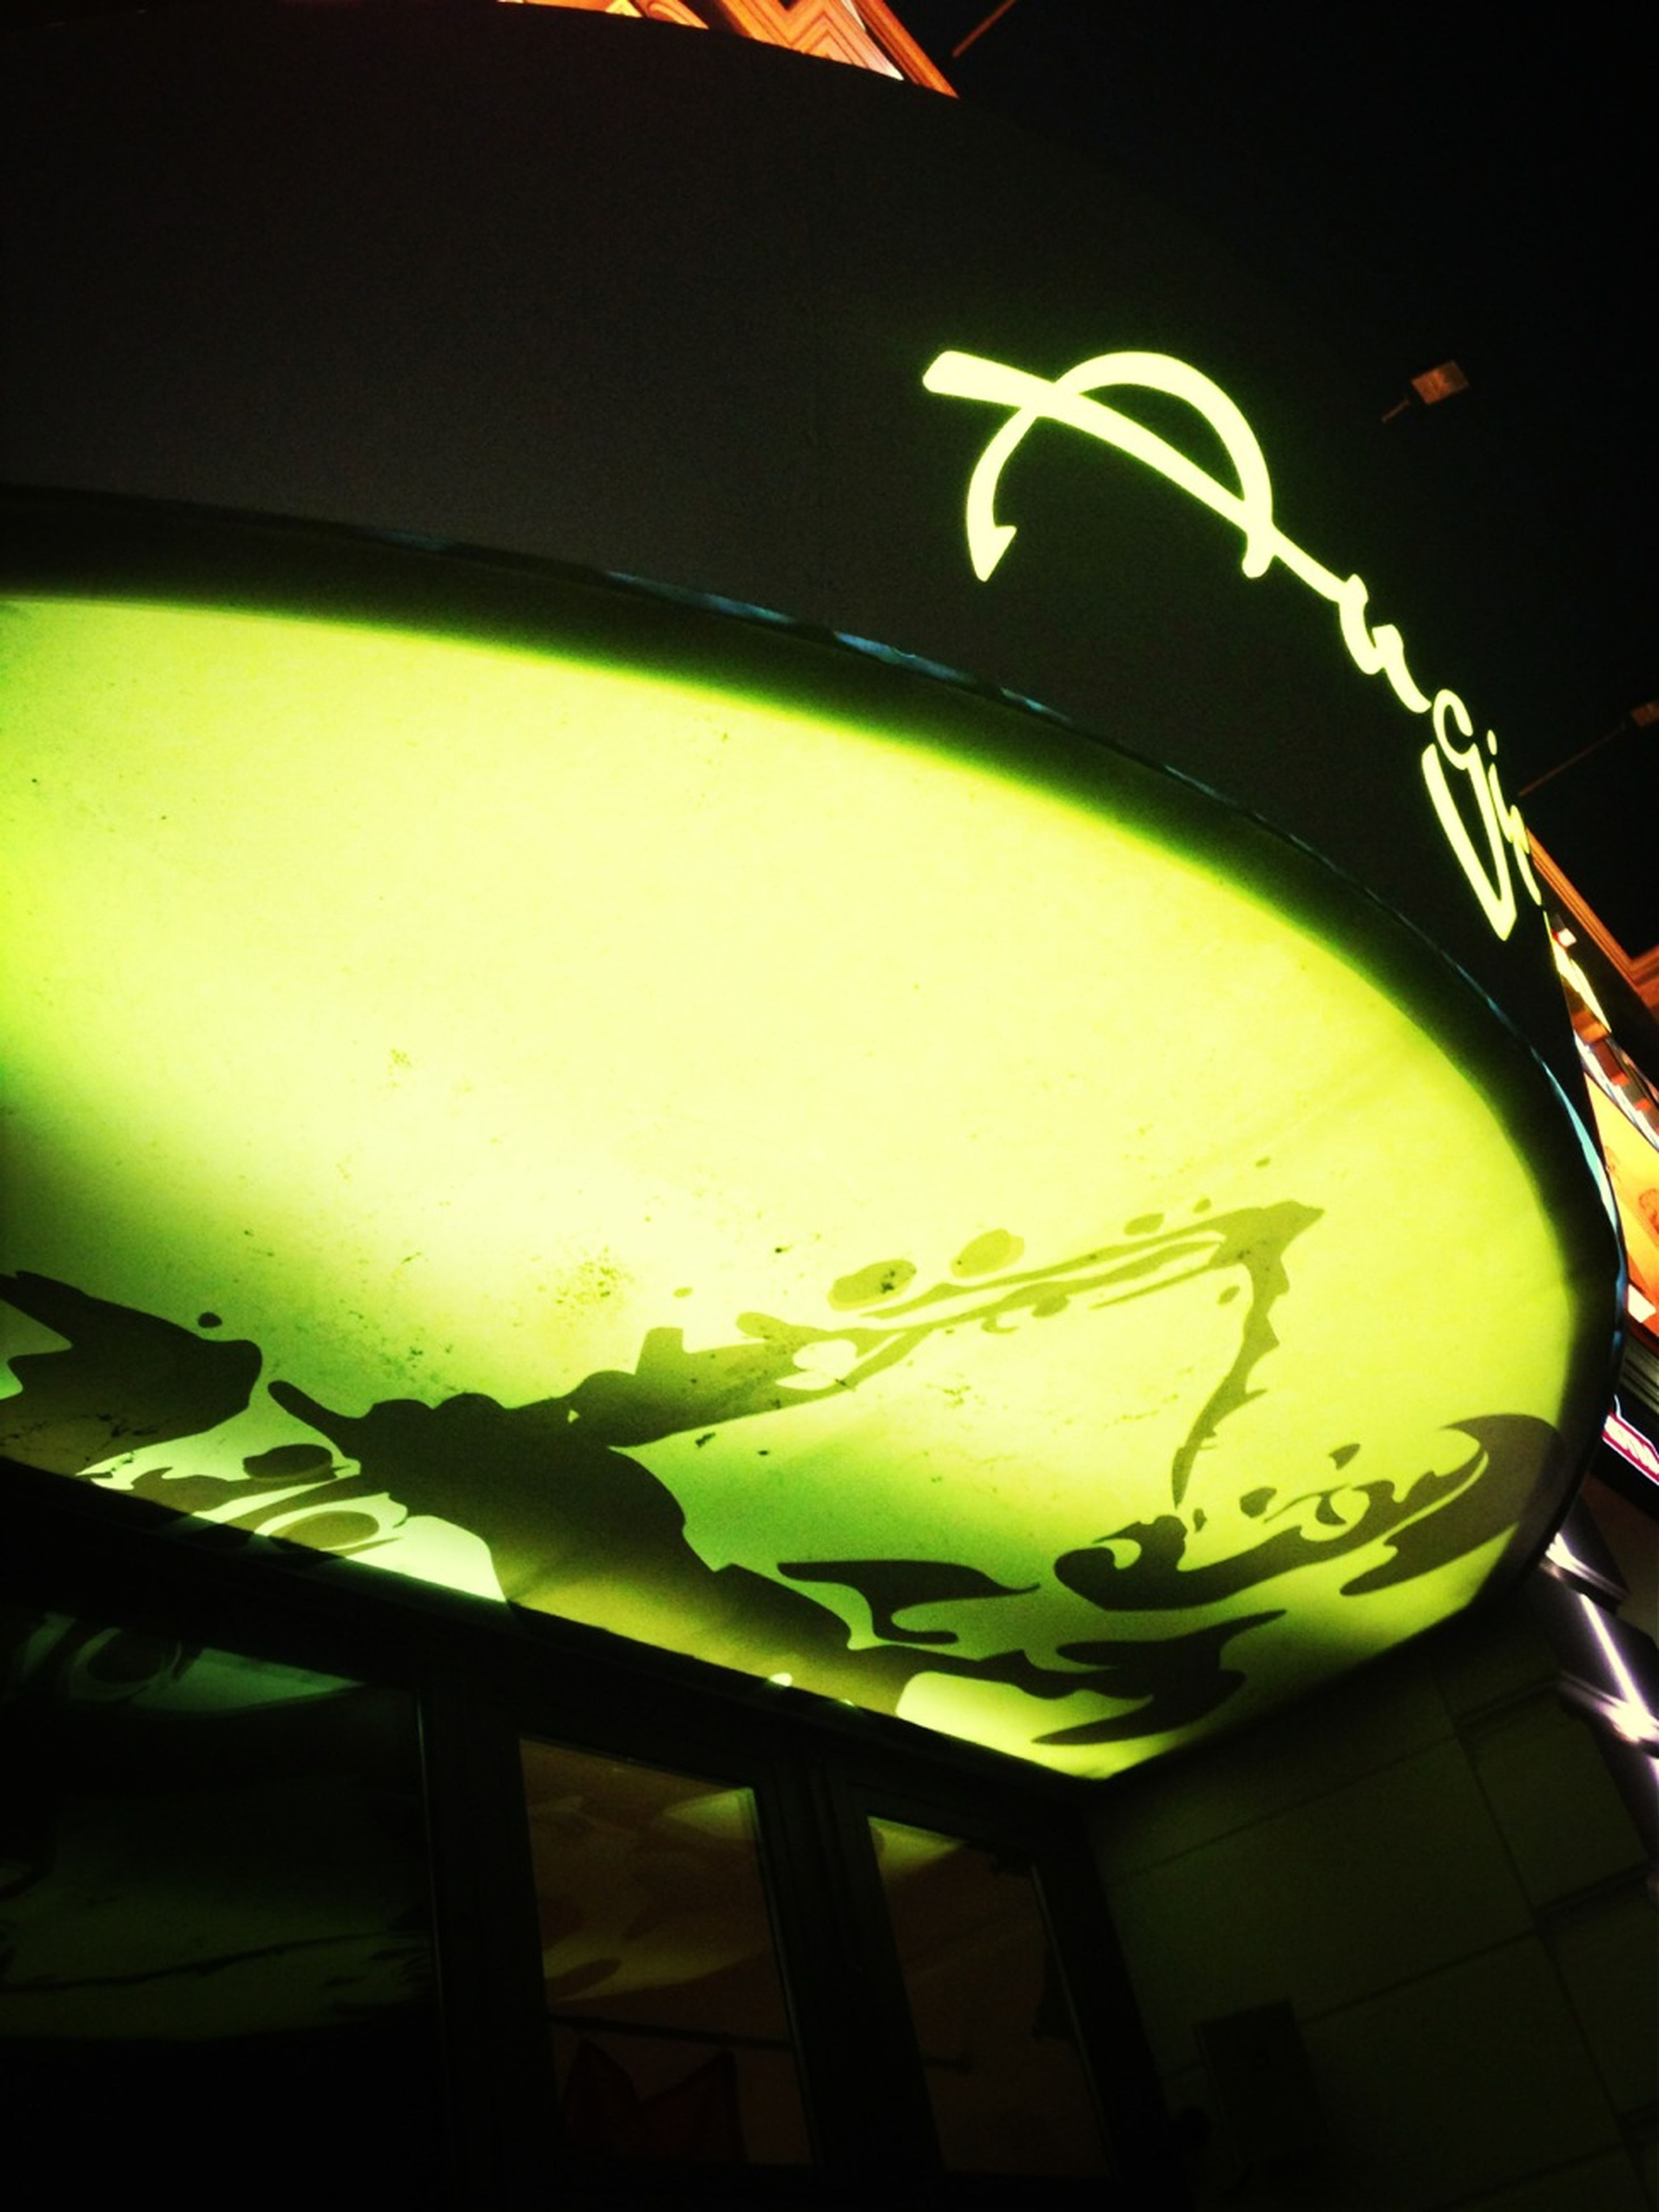 indoors, close-up, food and drink, text, part of, cropped, night, illuminated, no people, drink, communication, glass - material, green color, yellow, high angle view, western script, still life, focus on foreground